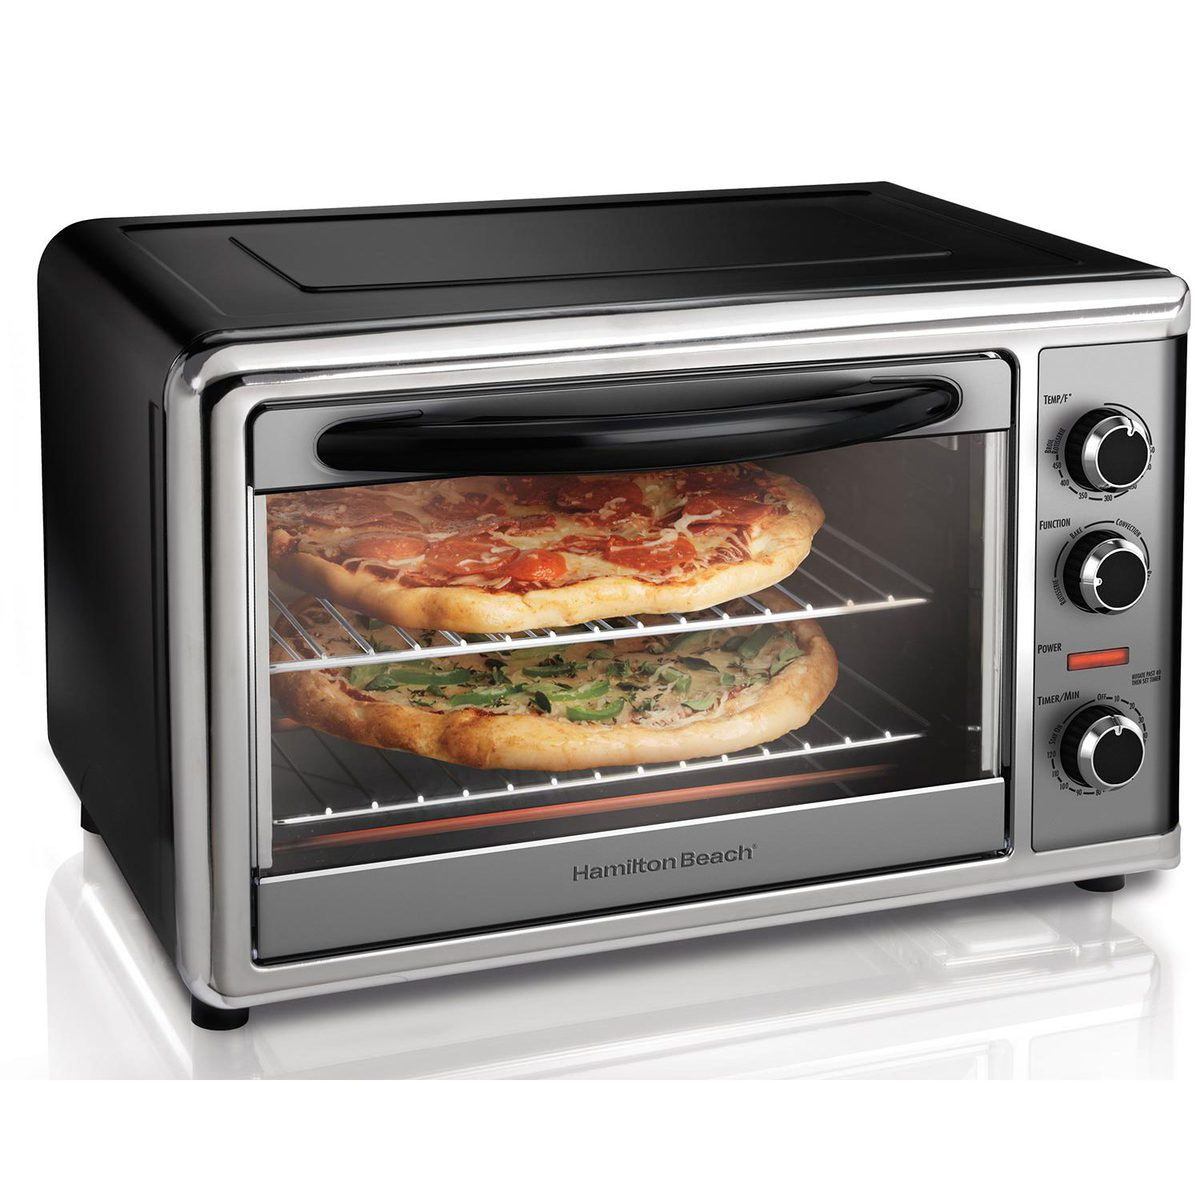 oven toaster uncategorized best pic capacity decker countertop files the trends styles and black of pizza manual convection